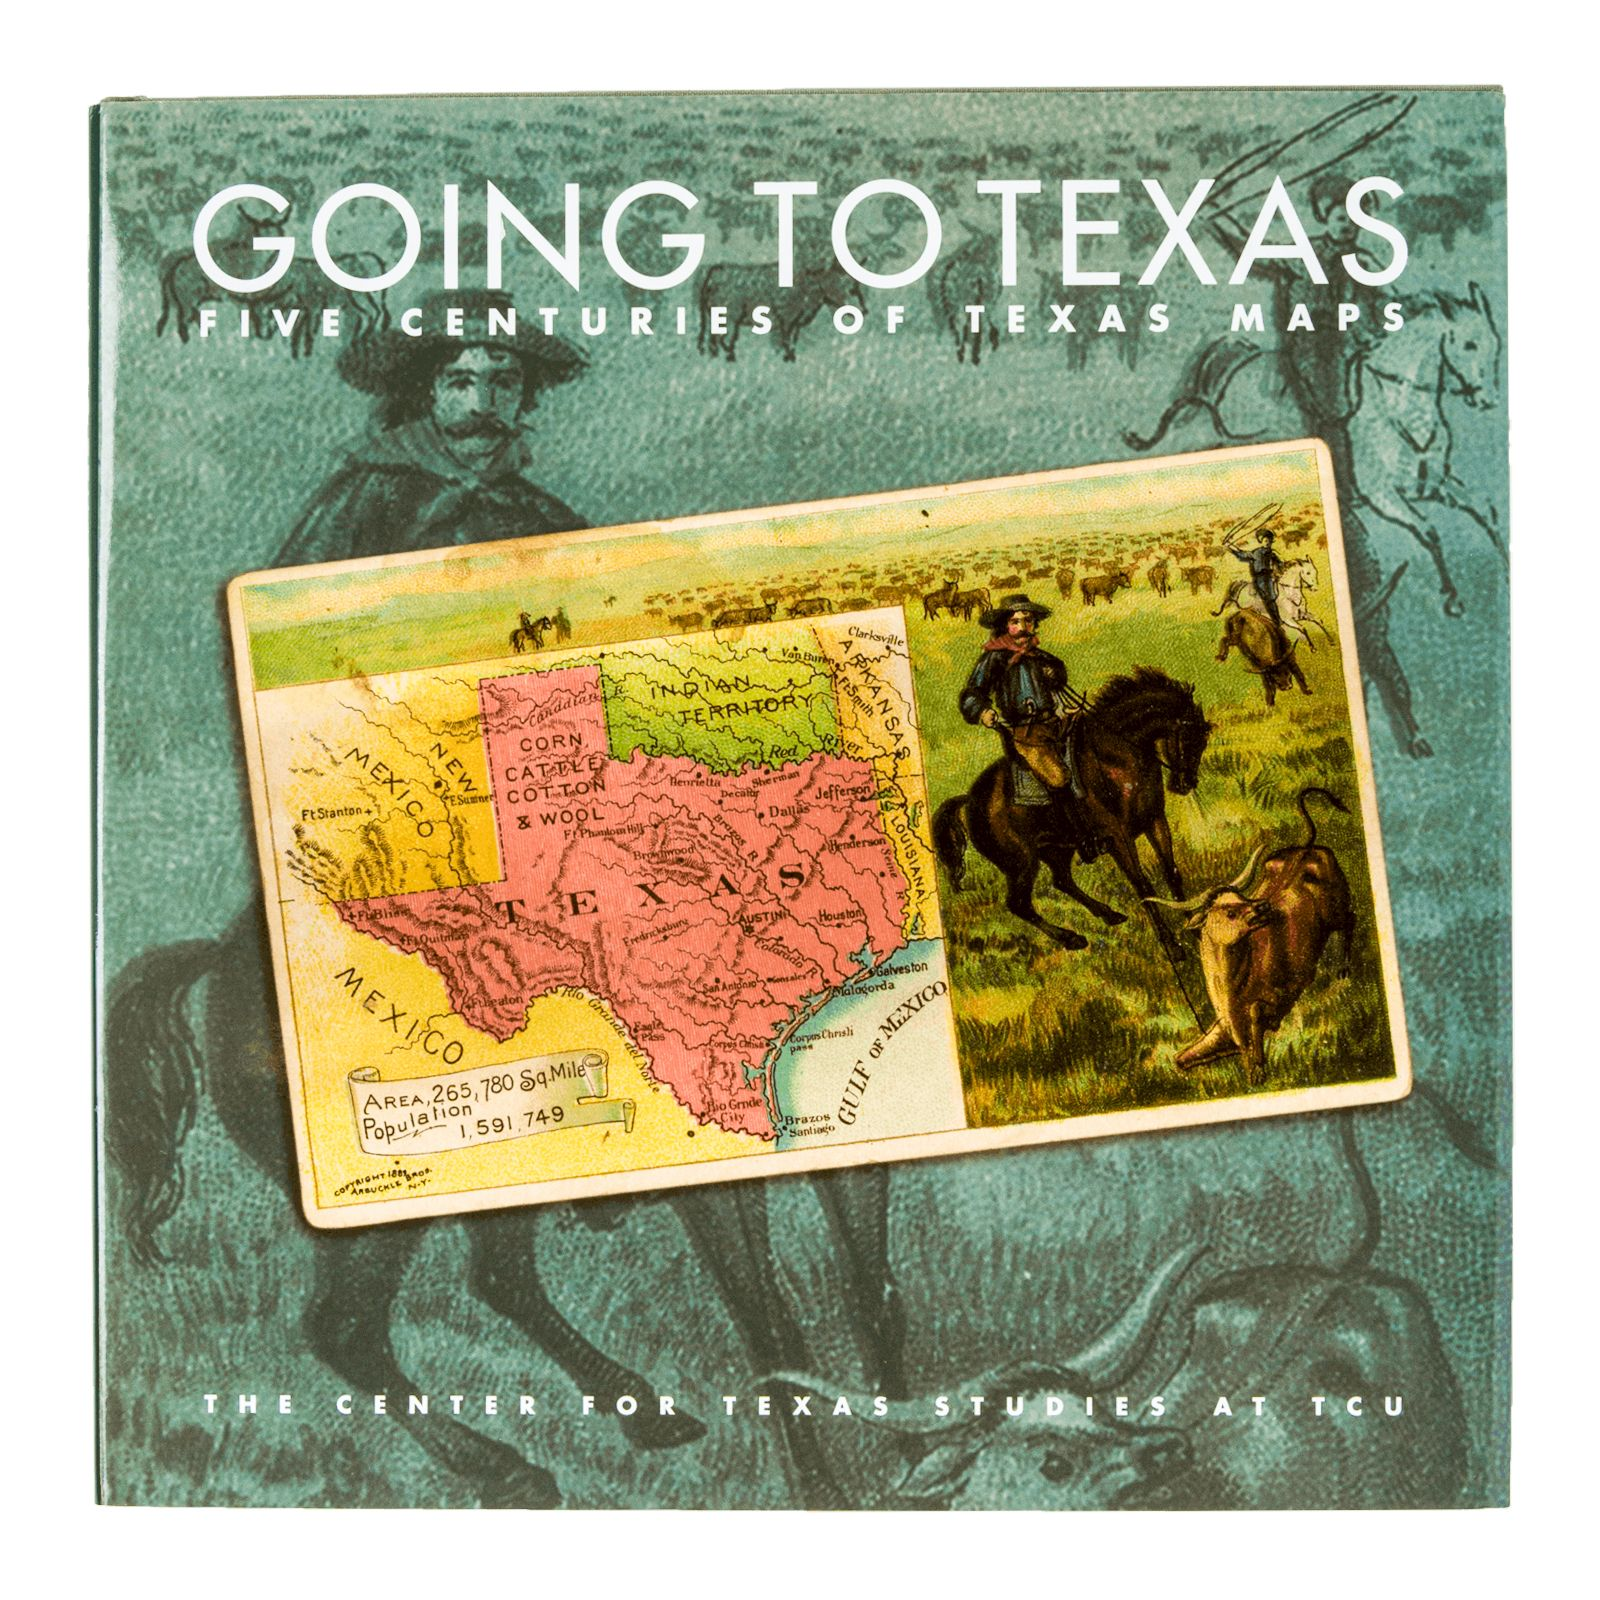 Going to Texas: Five Centuries of Texas Maps